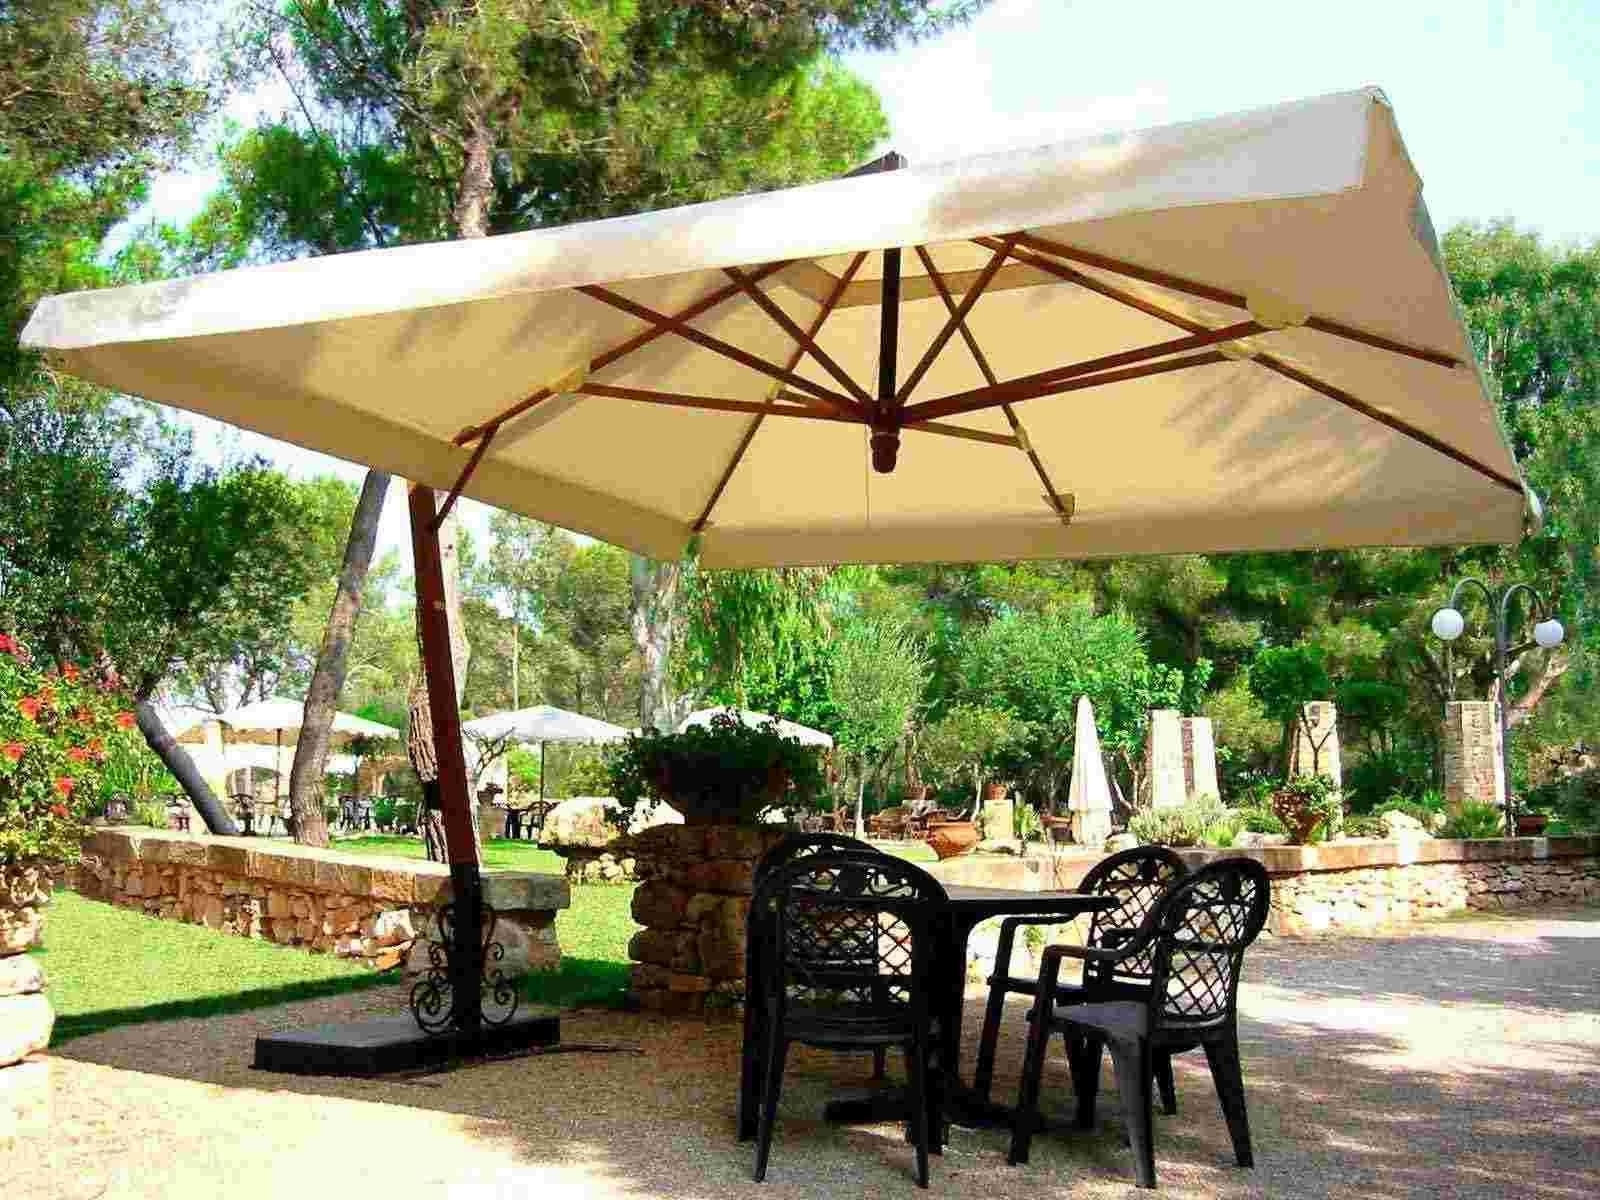 Outdoor Pertaining To Favorite Outdoor Patio Umbrellas (View 1 of 20)